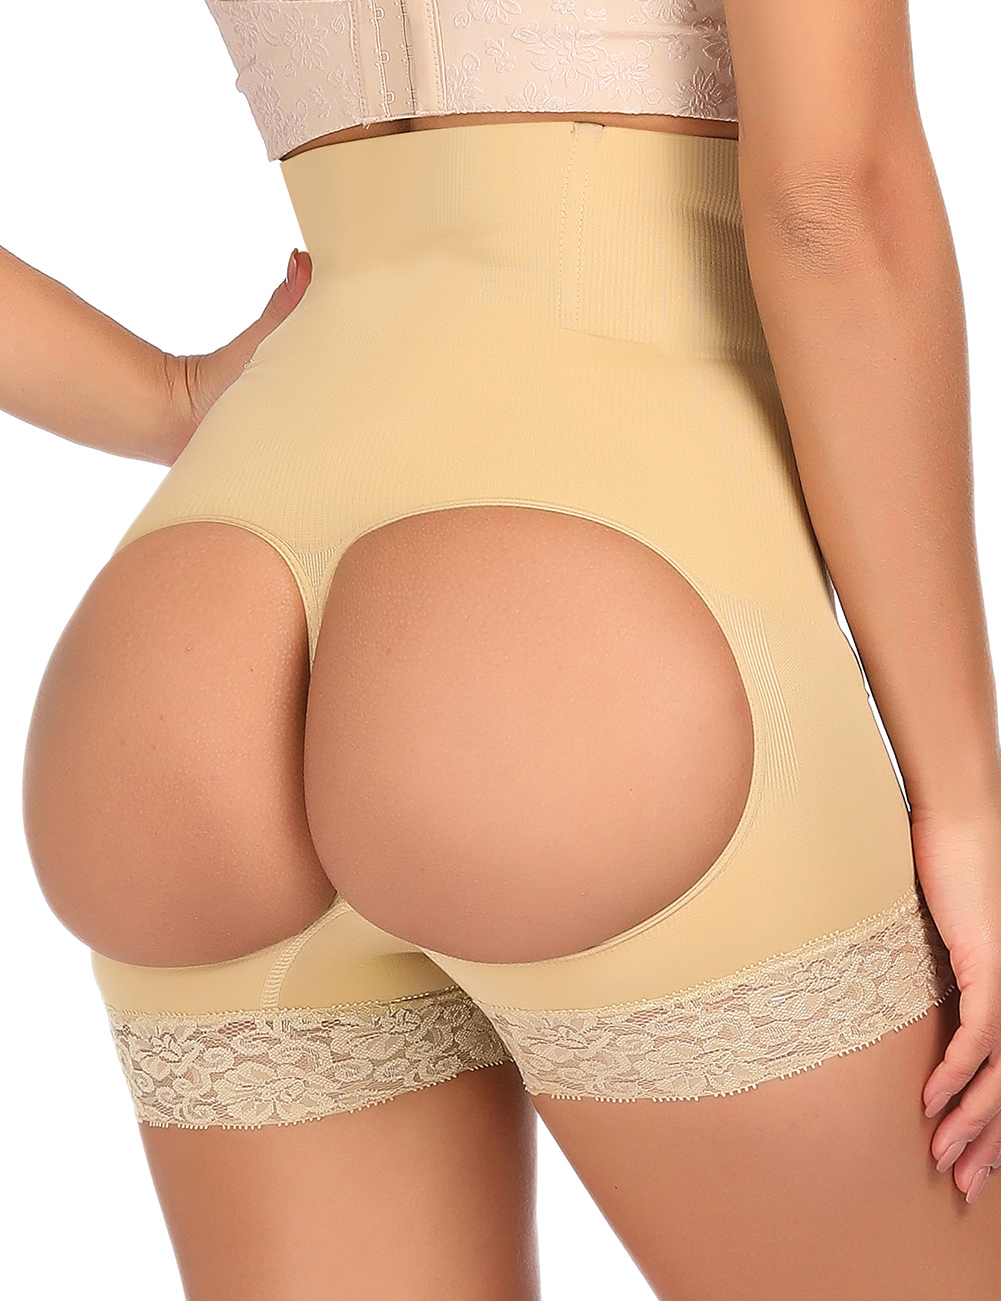 //cdn.affectcloud.com/feelingirldress/upload/imgs/Shapewear/Butt_Lift_Shaper/LB6212/LB6212-201912245e01b745723e0.jpg